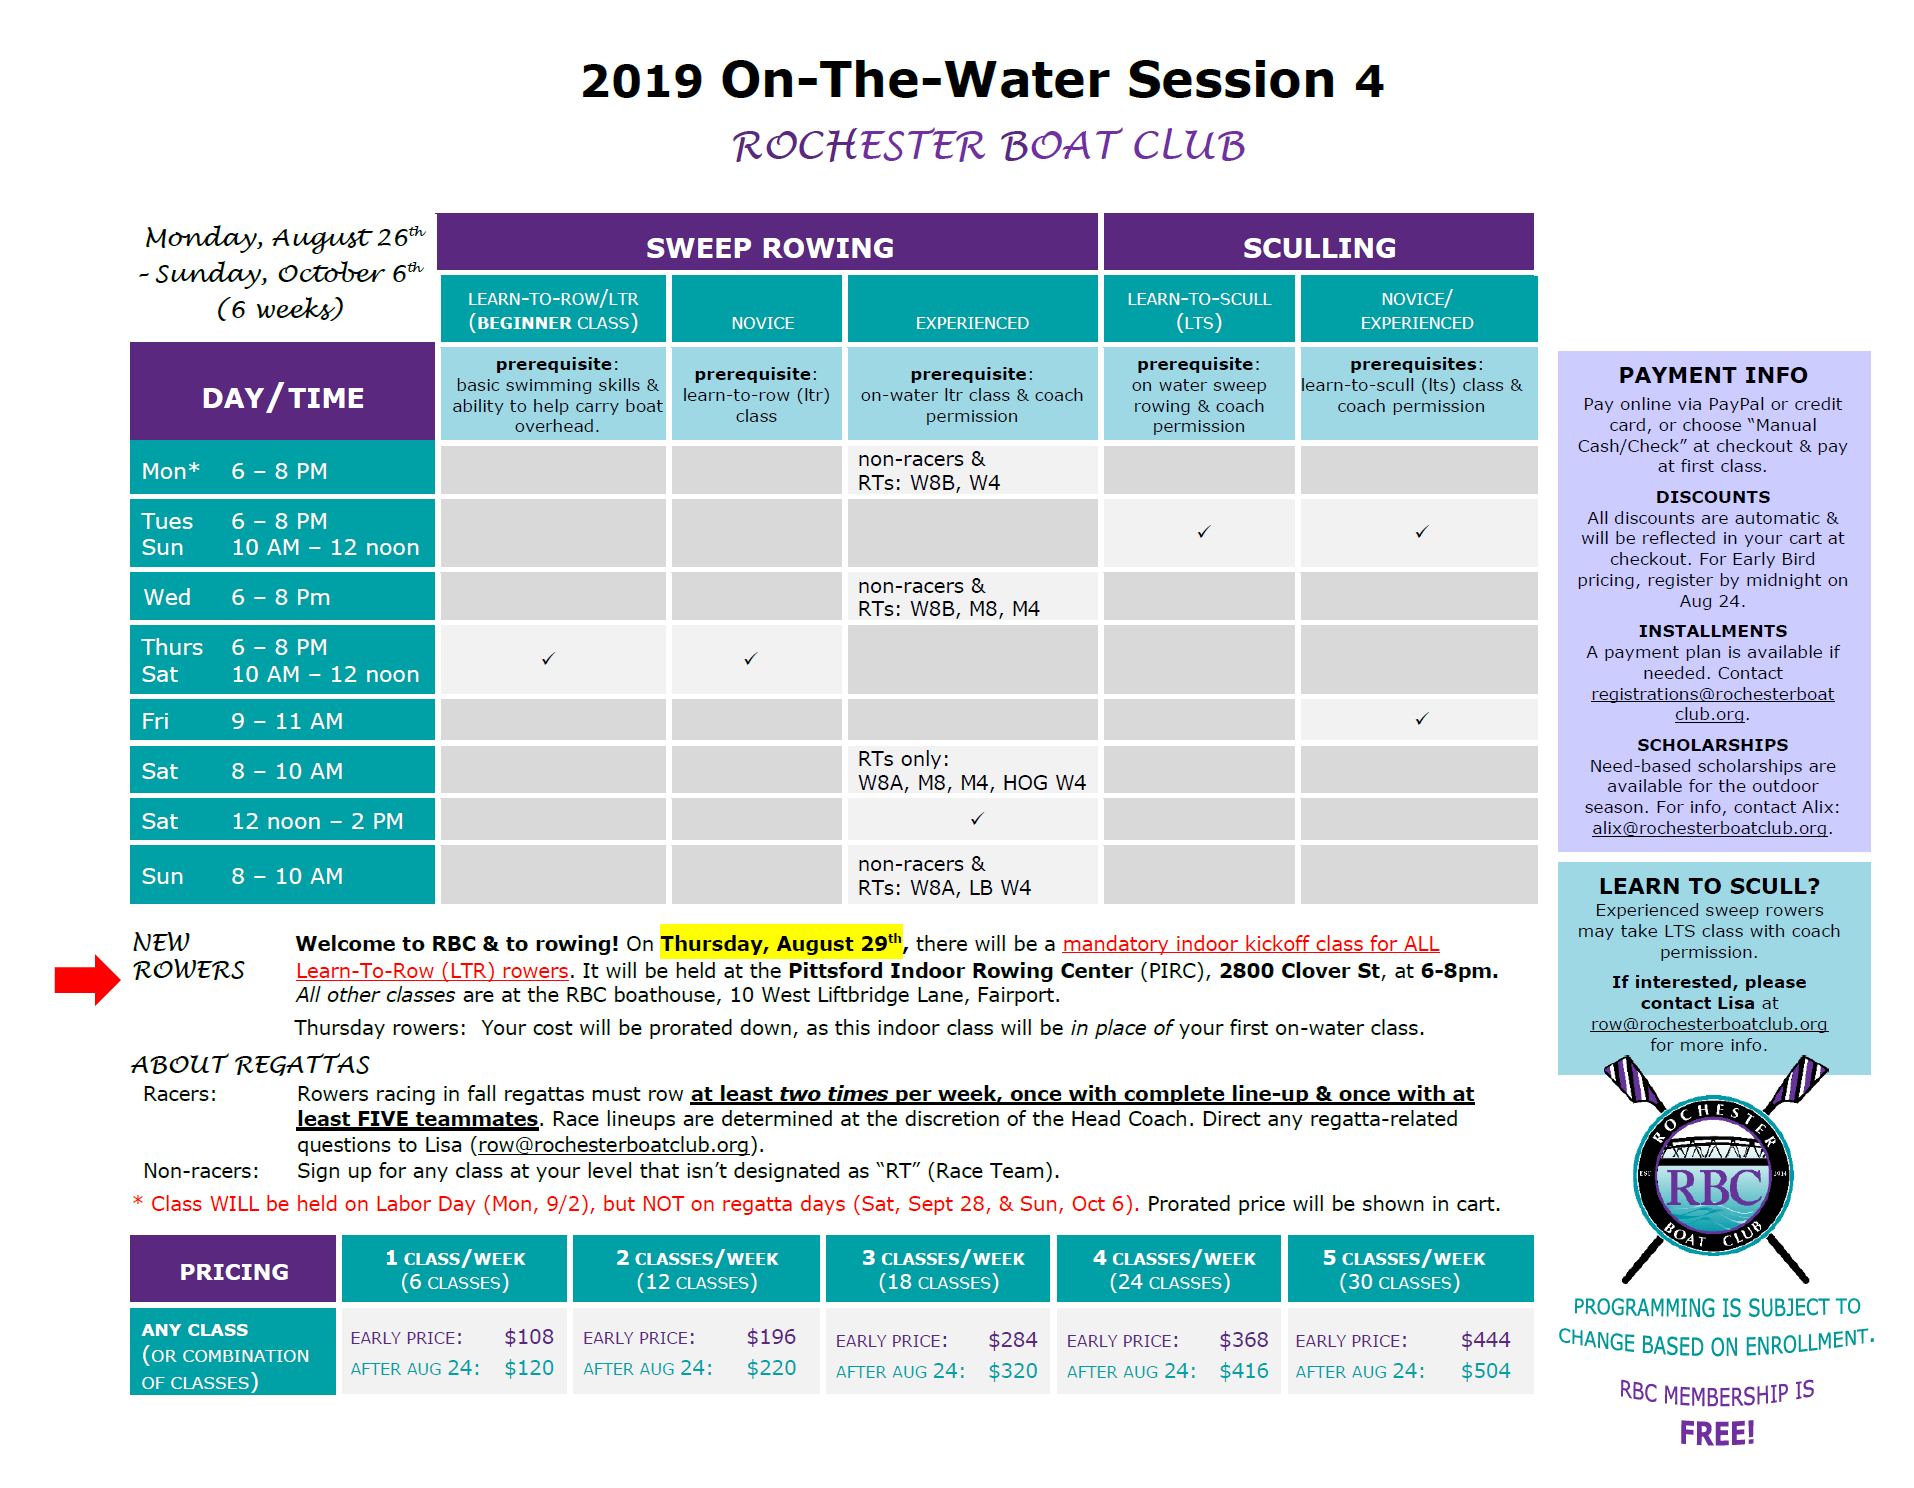 On-the-Water Session 4 Classes/Programming